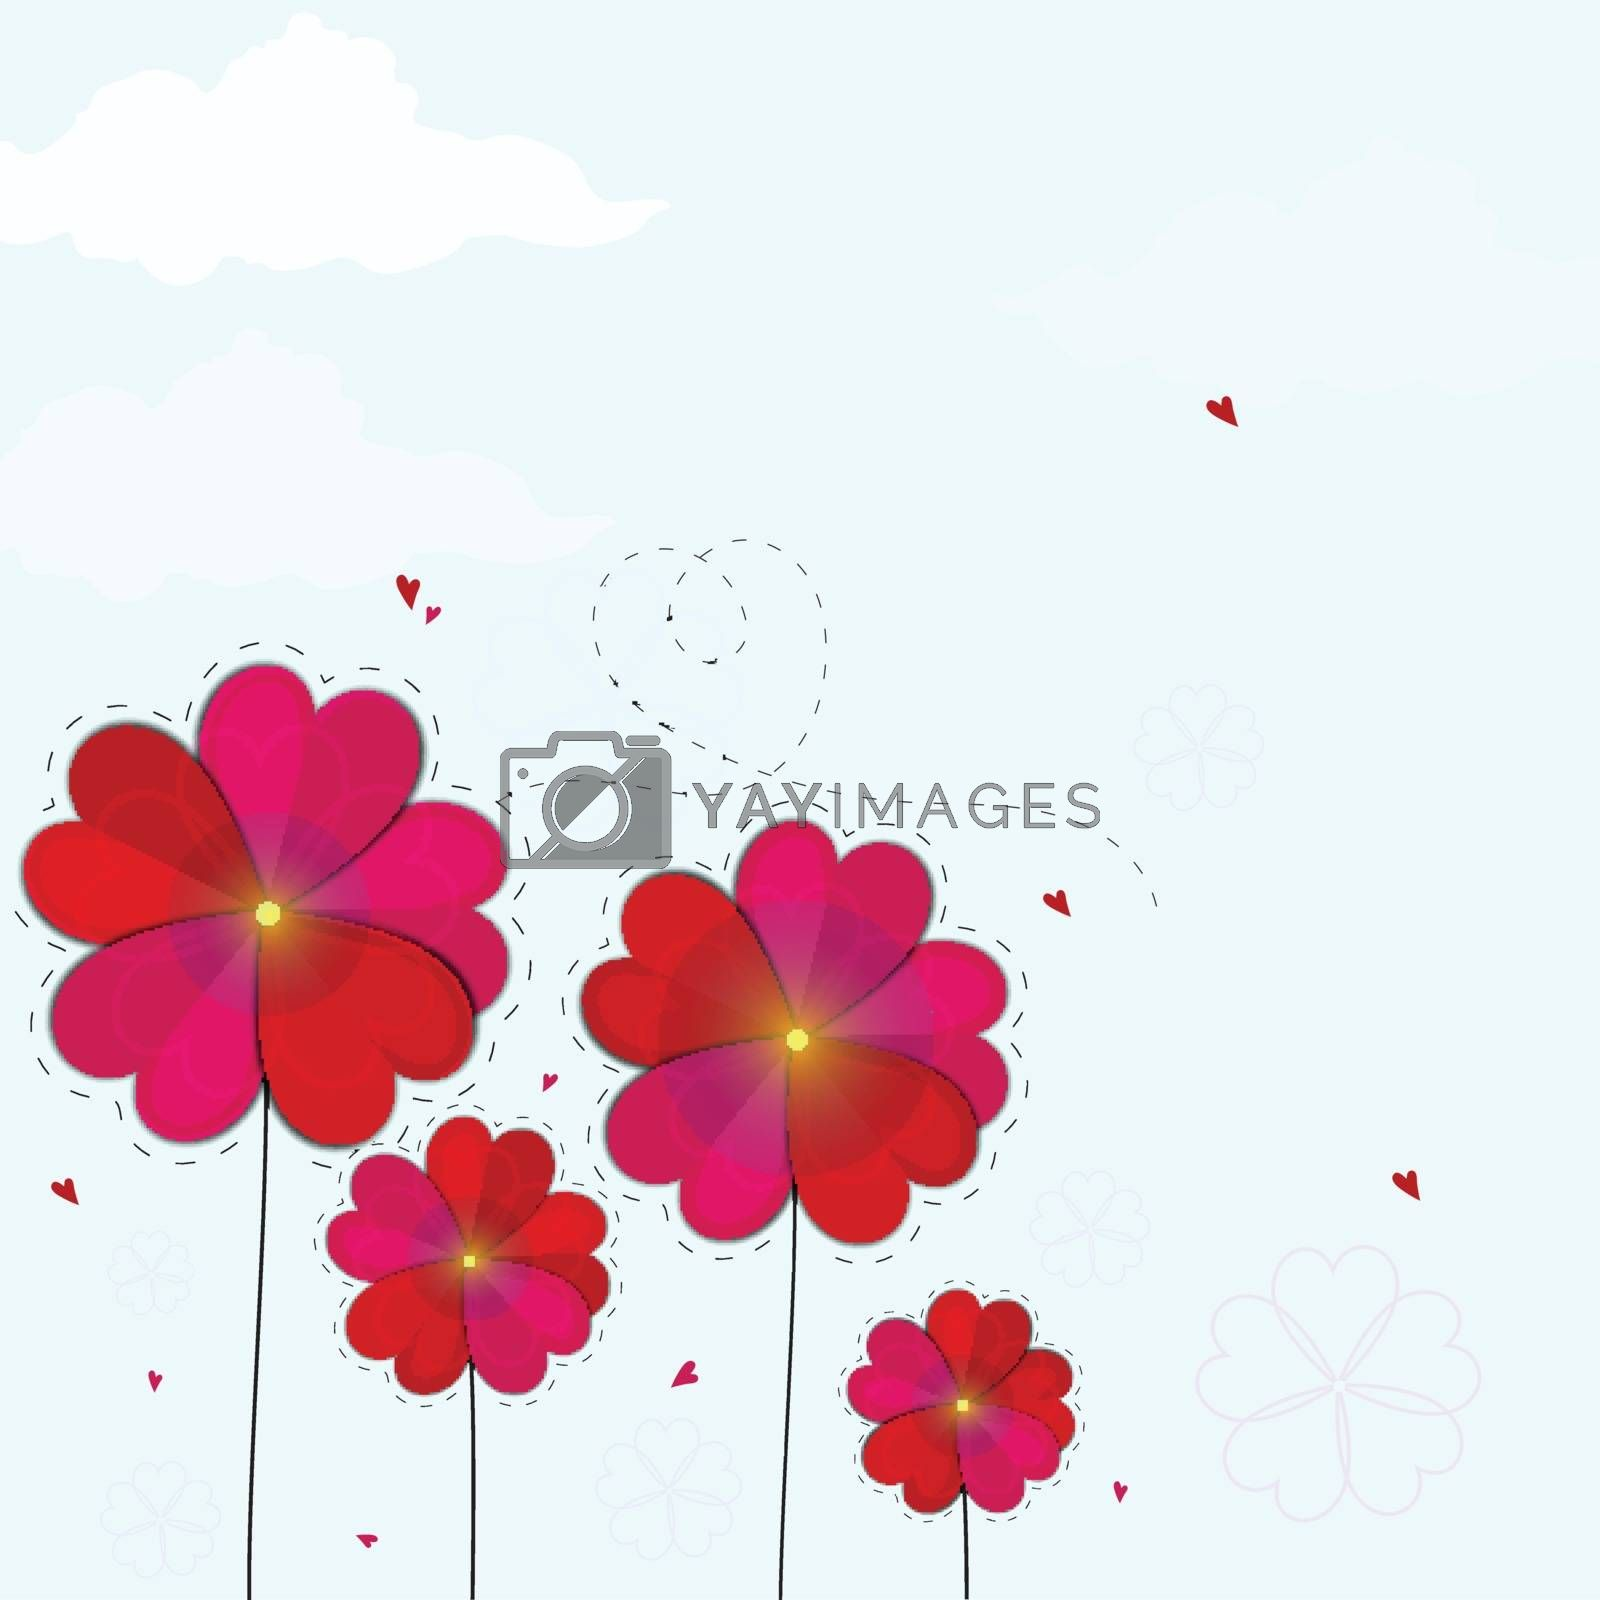 Creative heart shaped flowers for Happy Valentine's Day Celebration.